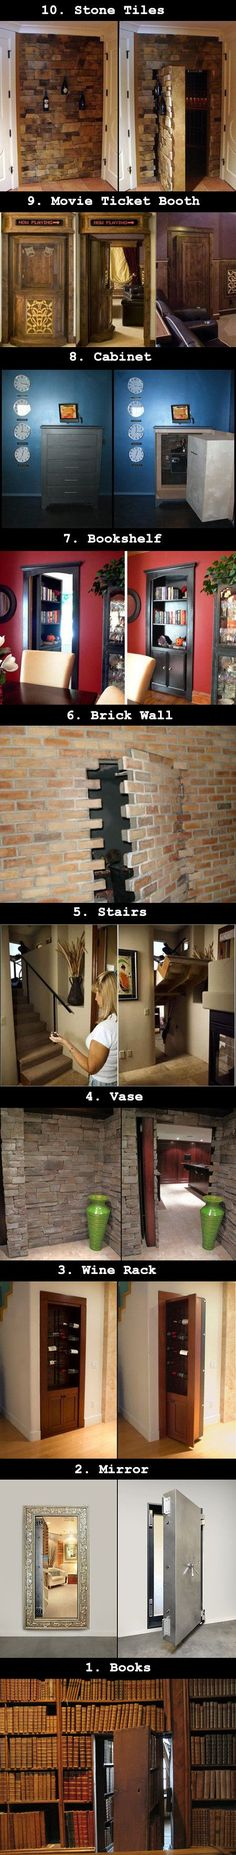 Need an escape route? Here are some awesome secret doors that even Batman (Bruce Wayne) would approve of.